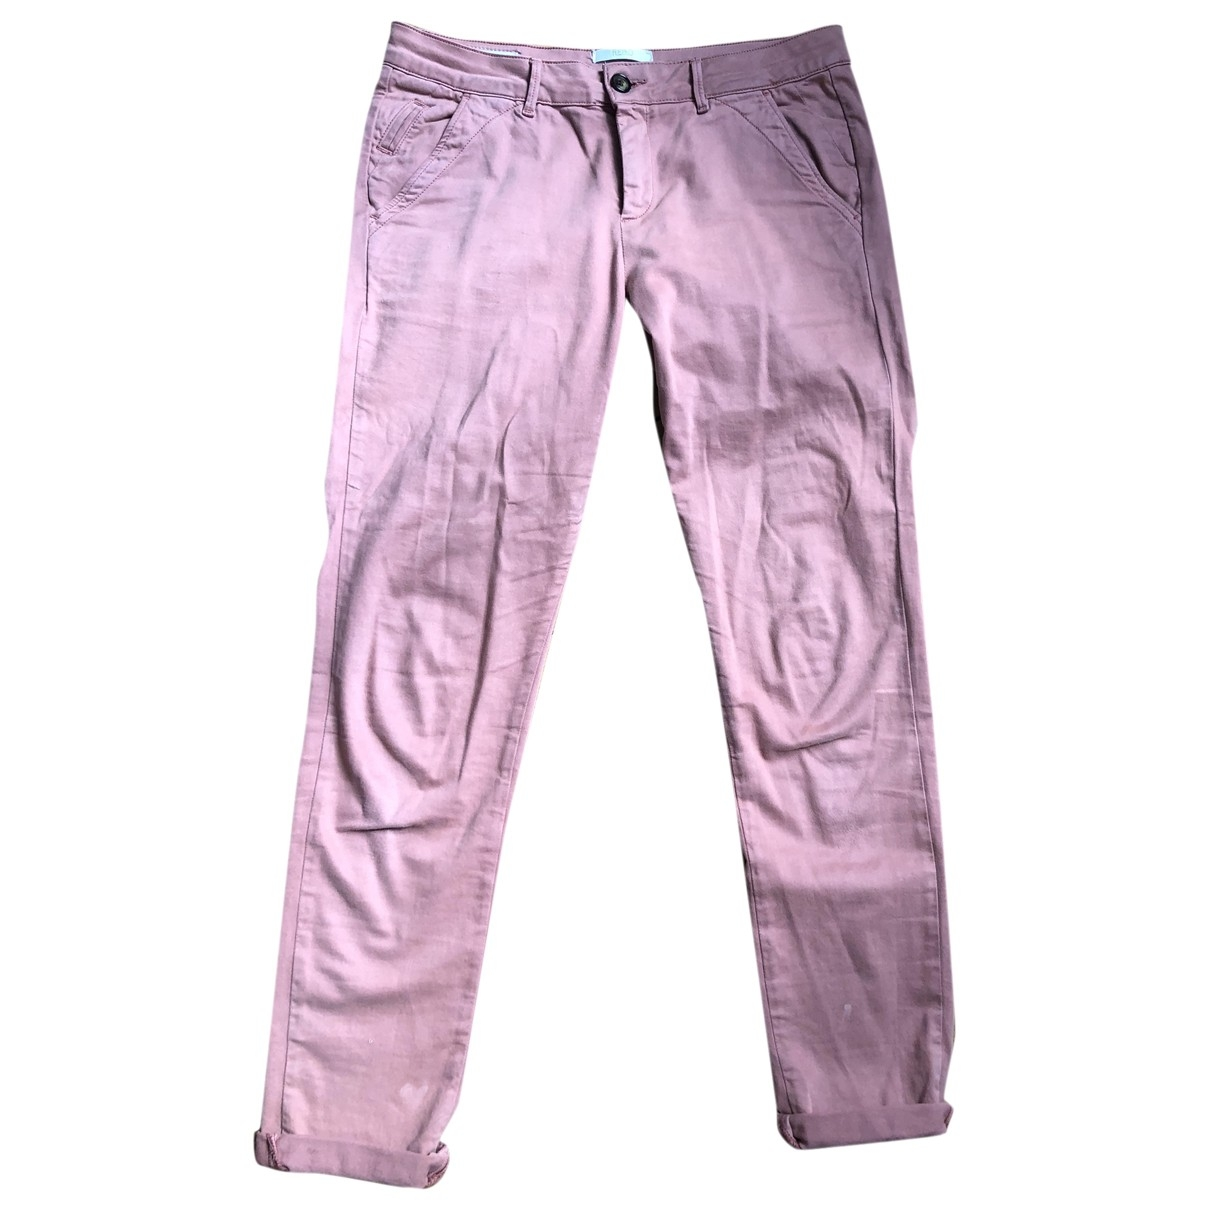 Reiko \N Pink Cotton Trousers for Women 36 FR